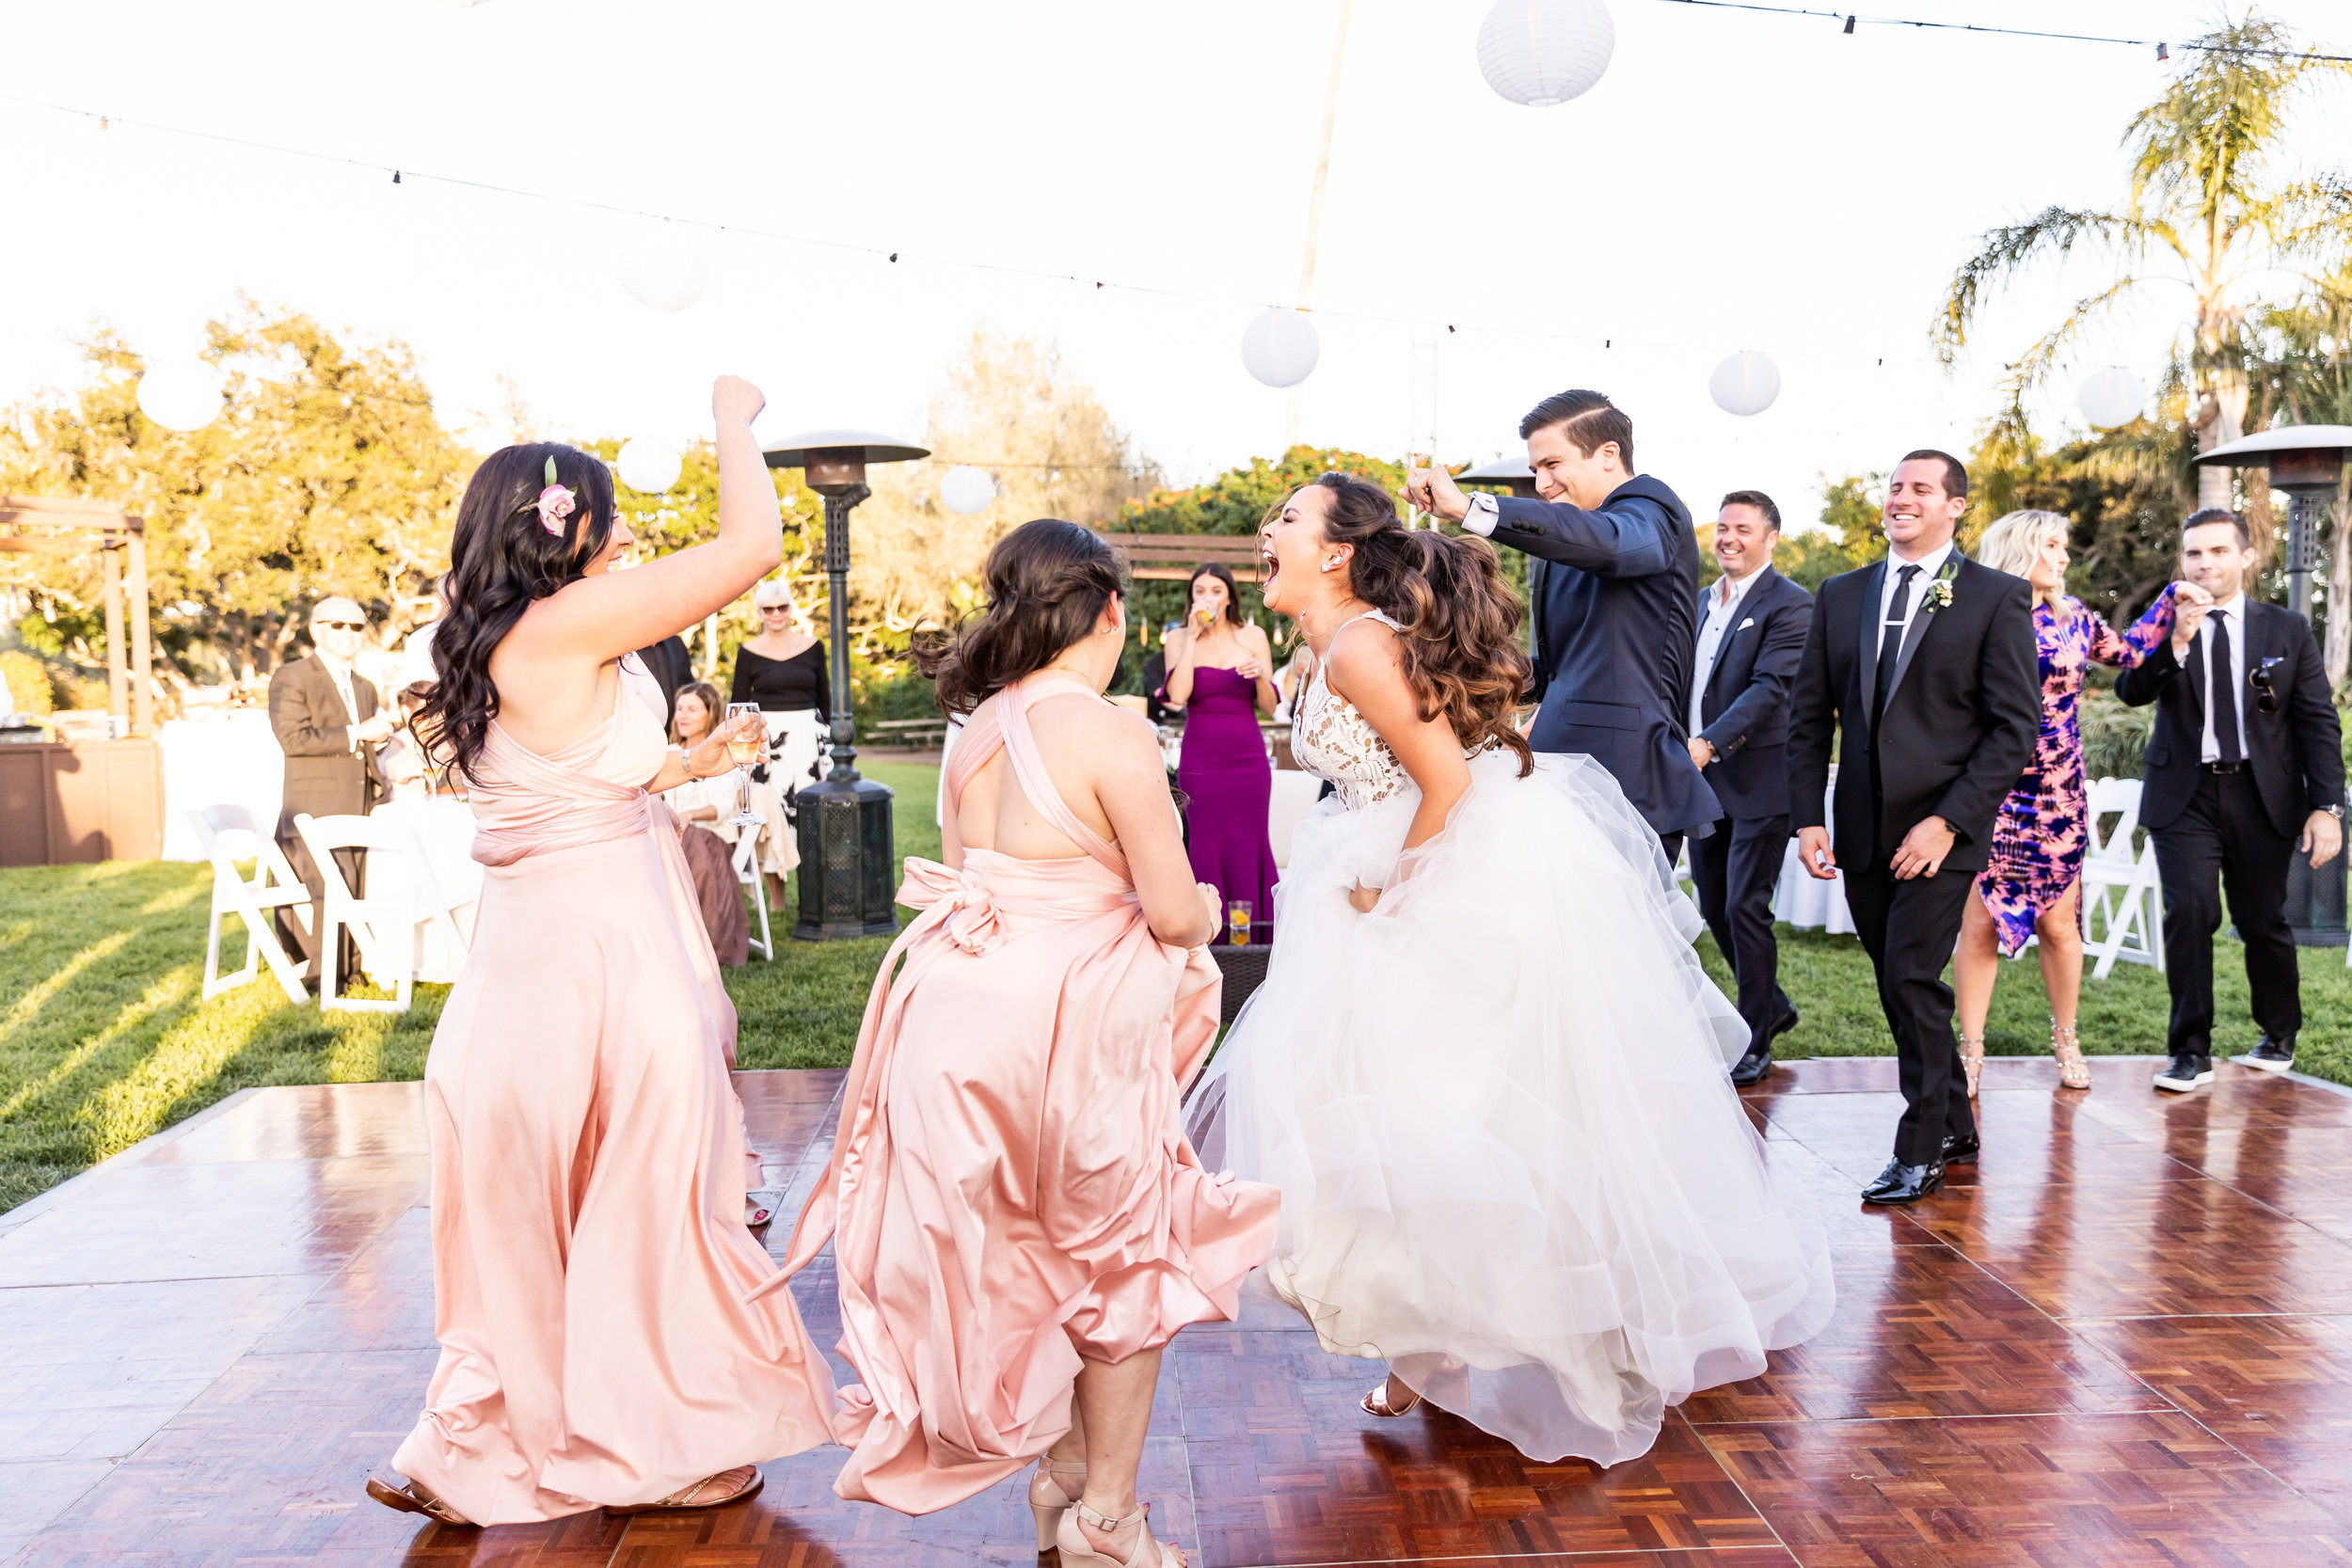 Kristin&PanchoWedding_04.14.18_MichelleKylePhotography-848.jpg